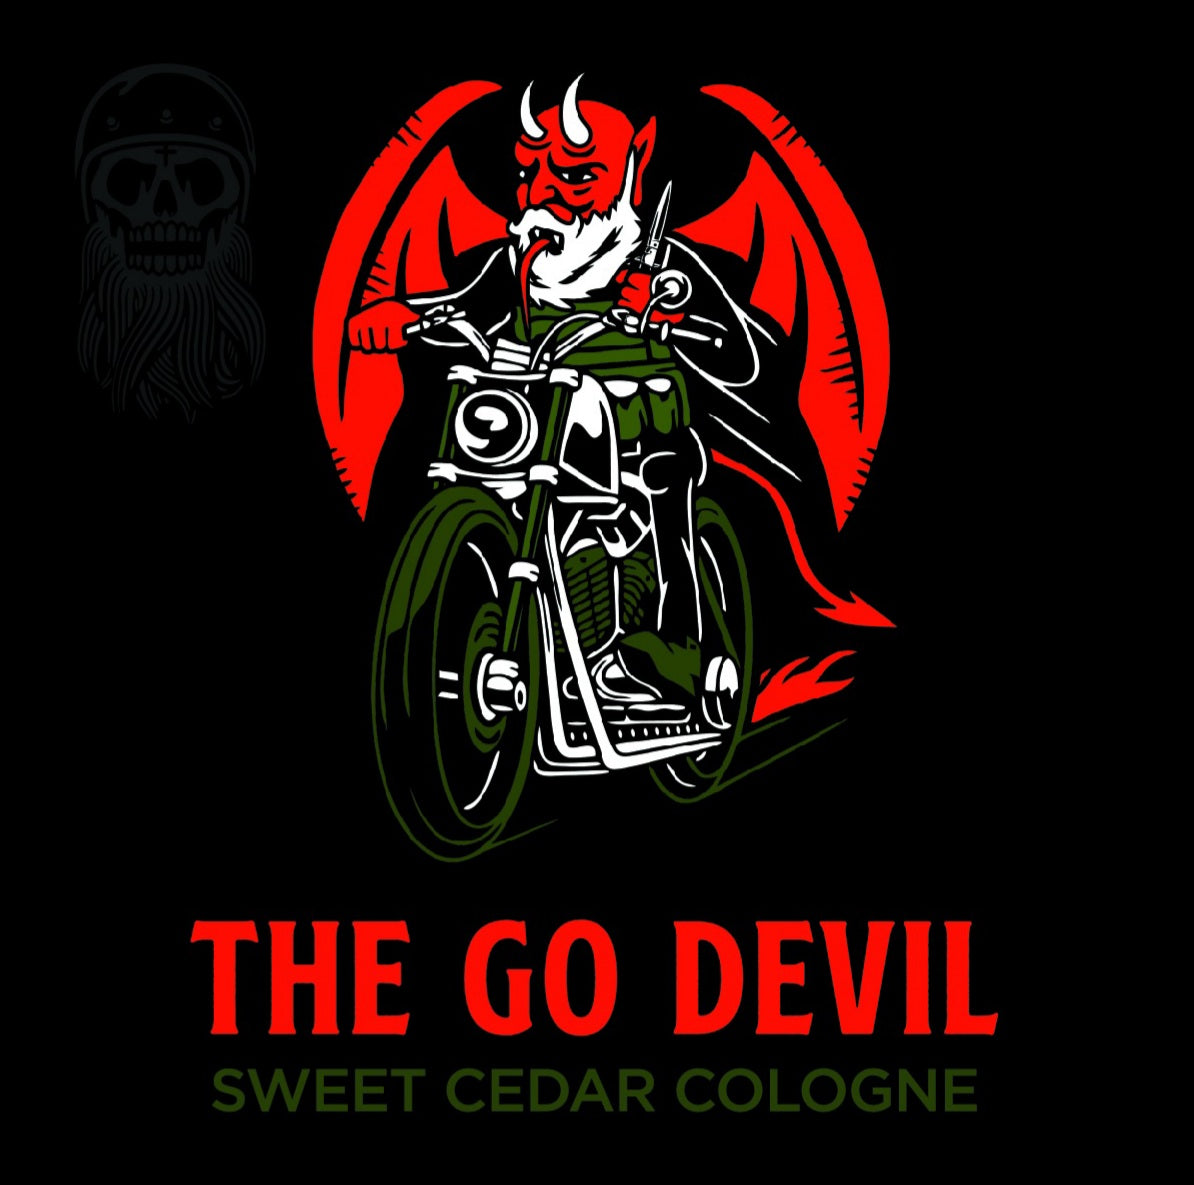 THE GO DEVIL (cedar leather cologne)